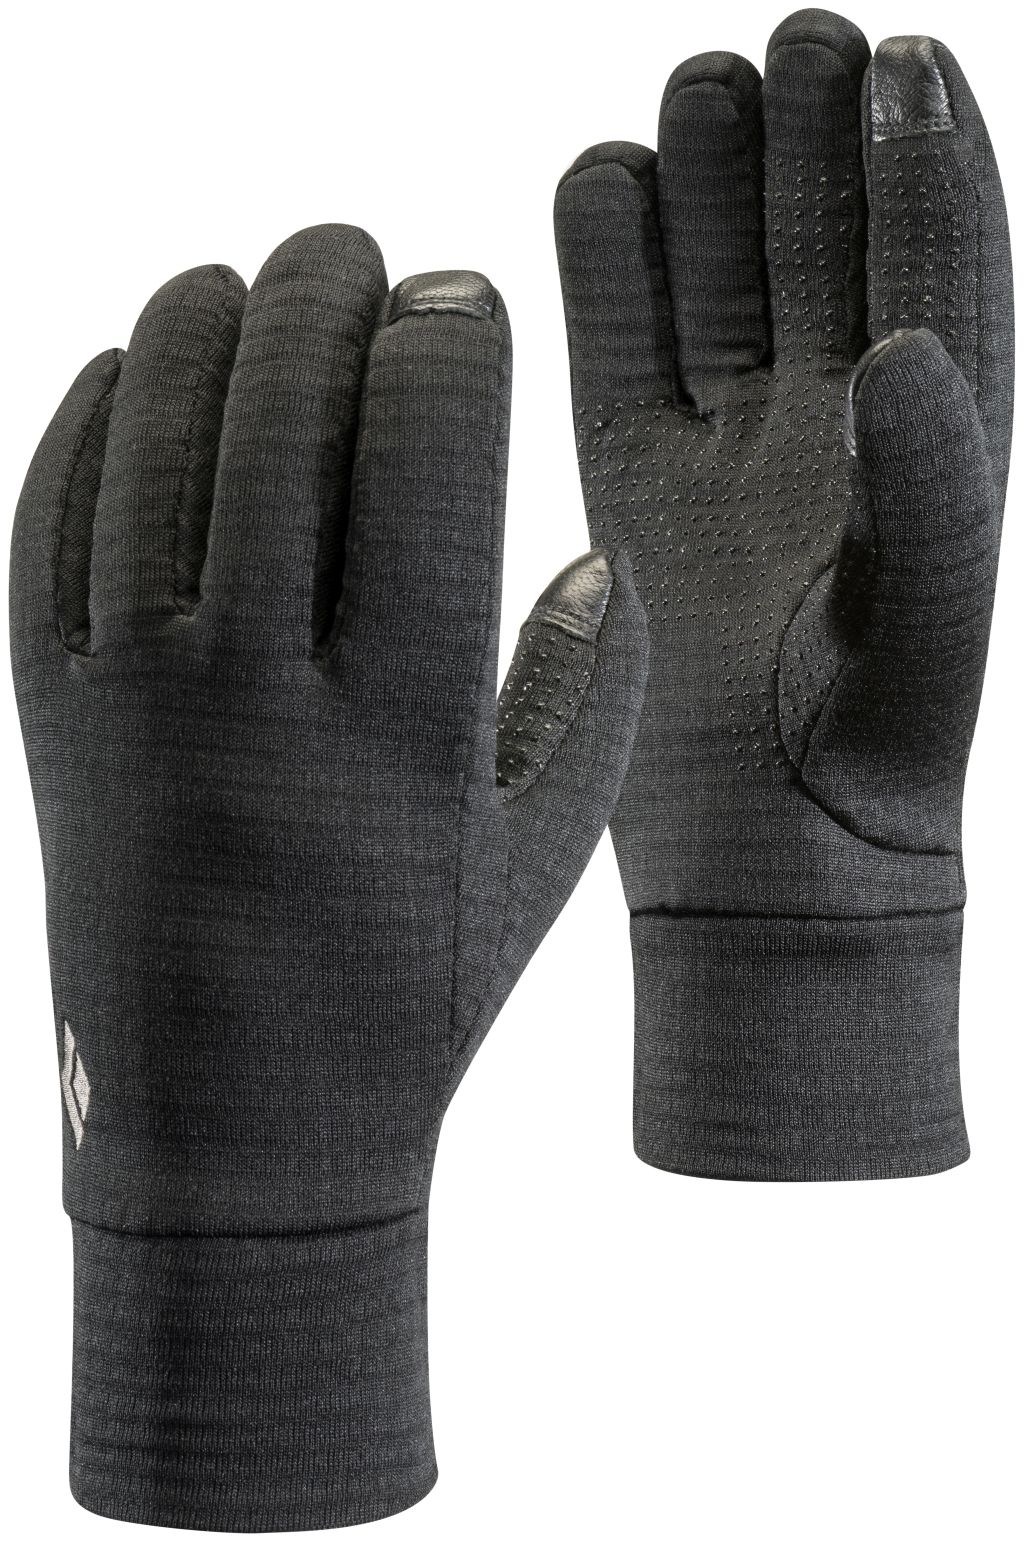 Black Diamond Midweight Gridtech Fleece Gloves Black-30